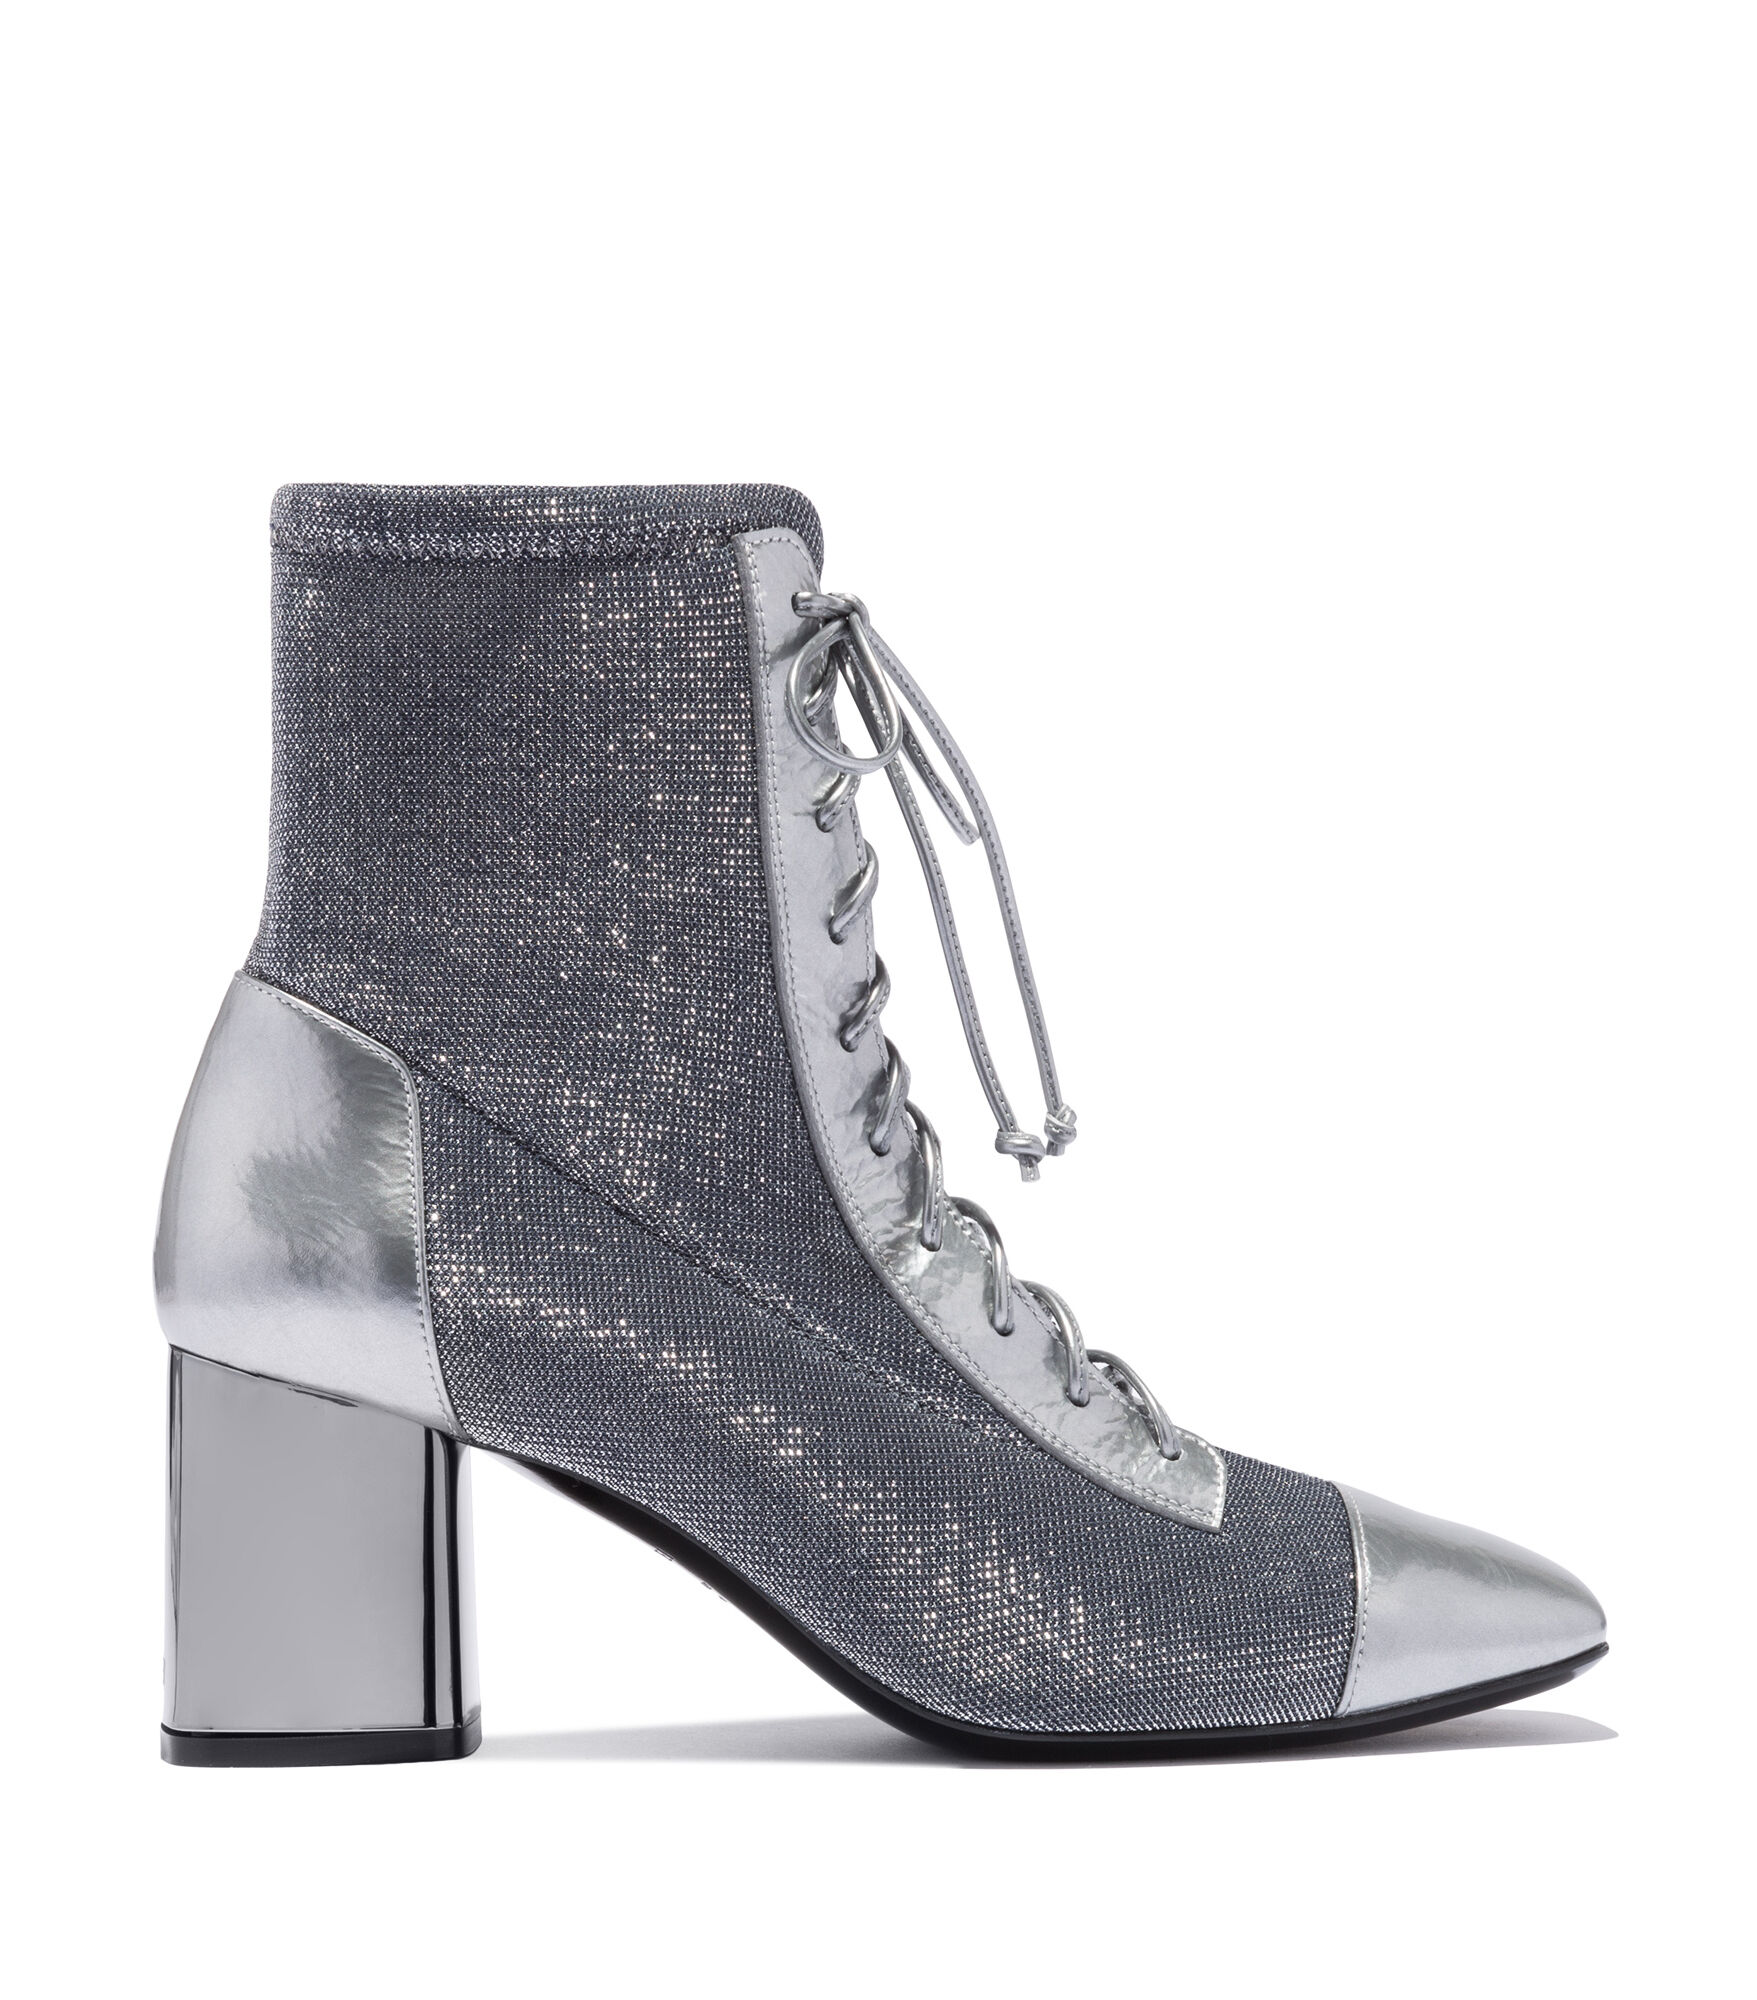 Casadei Ankle Boots - Neowall Zinc Jersey